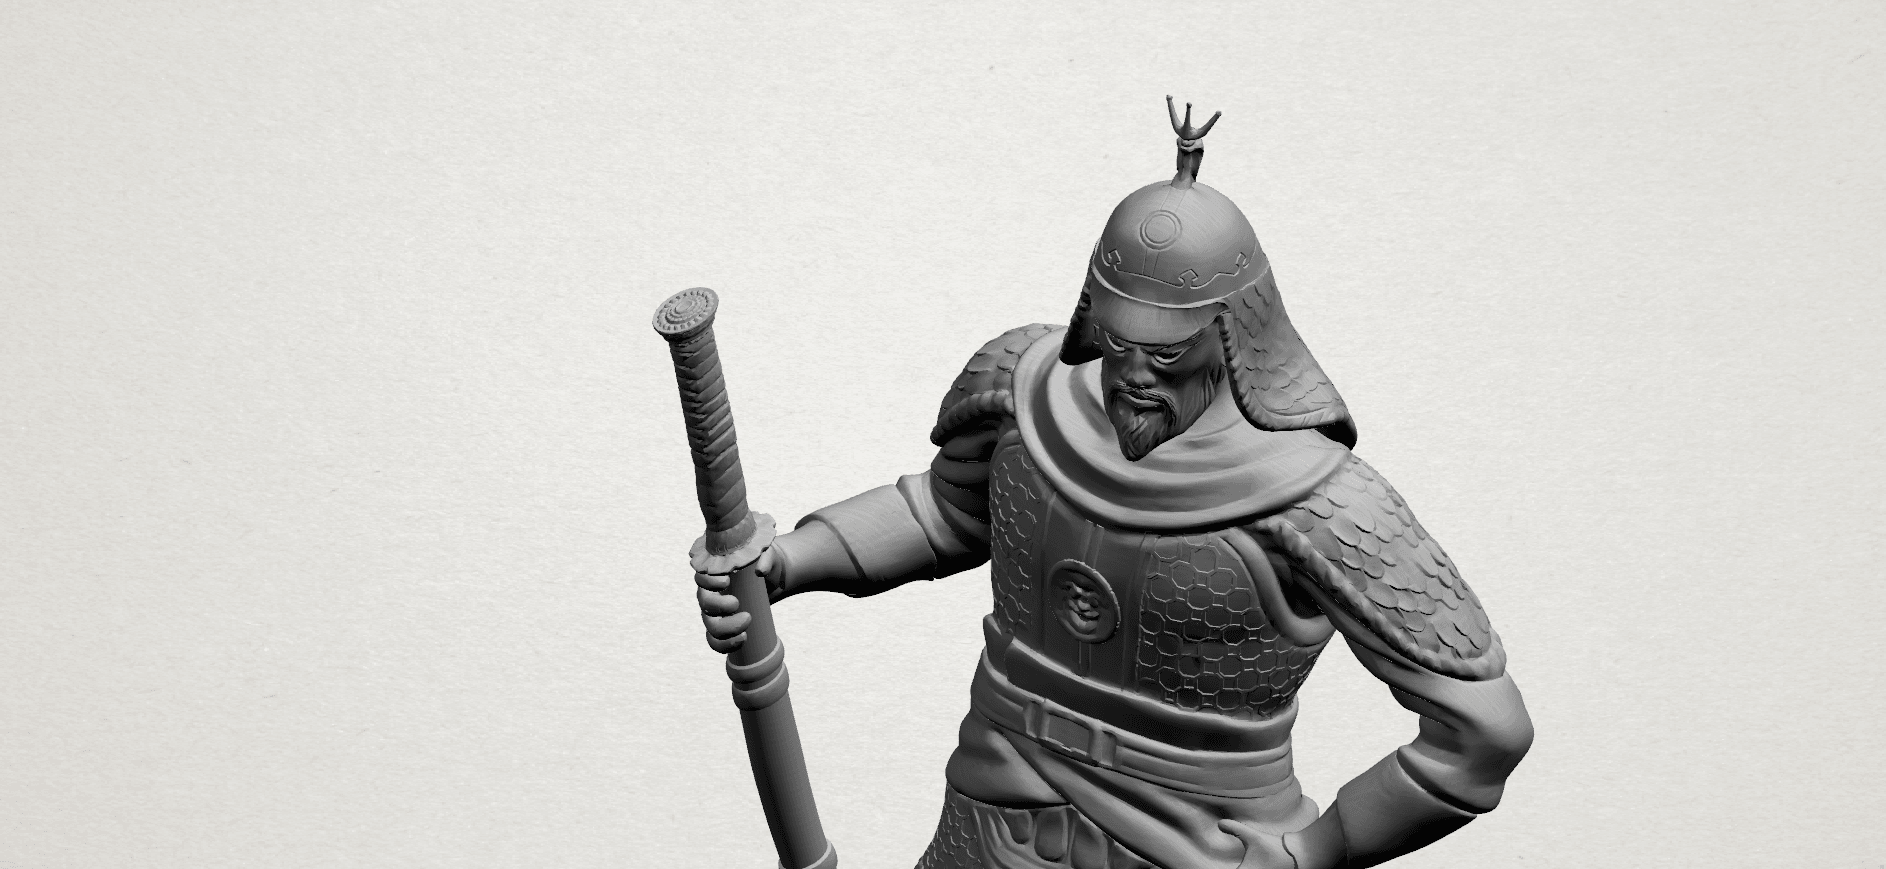 Age of Empire - warrior -A13.png Download free STL file Age of Empire - warrio • 3D print design, GeorgesNikkei